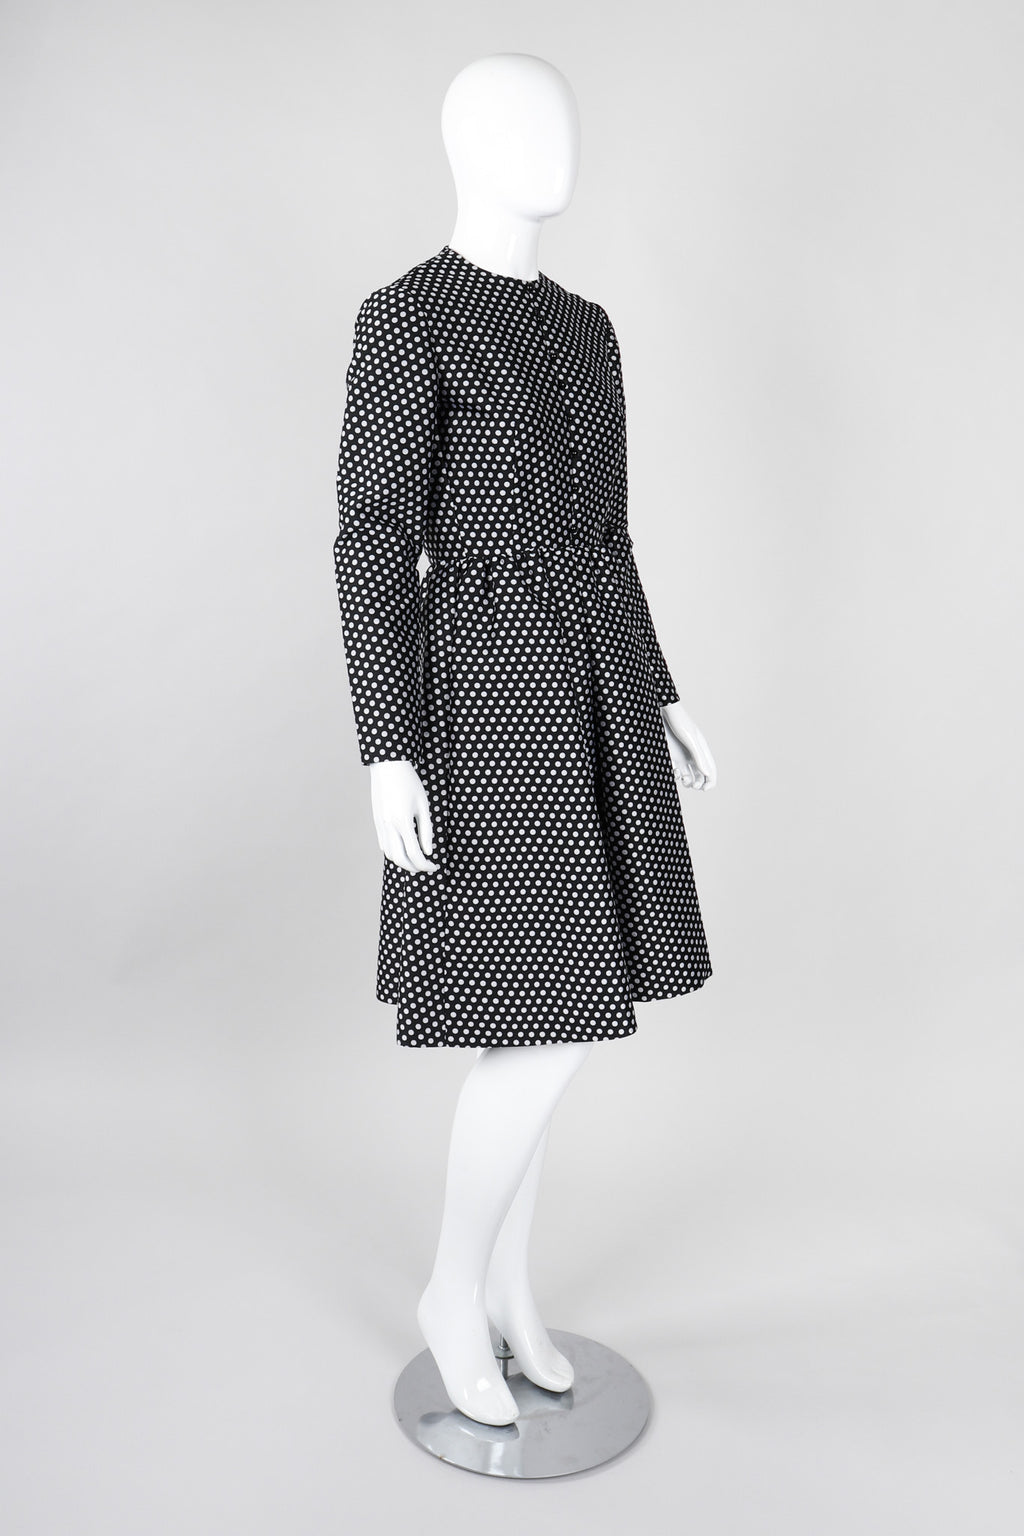 Recess Los Angeles Vintage Geoffrey Beene B&W Silk Dot Dress